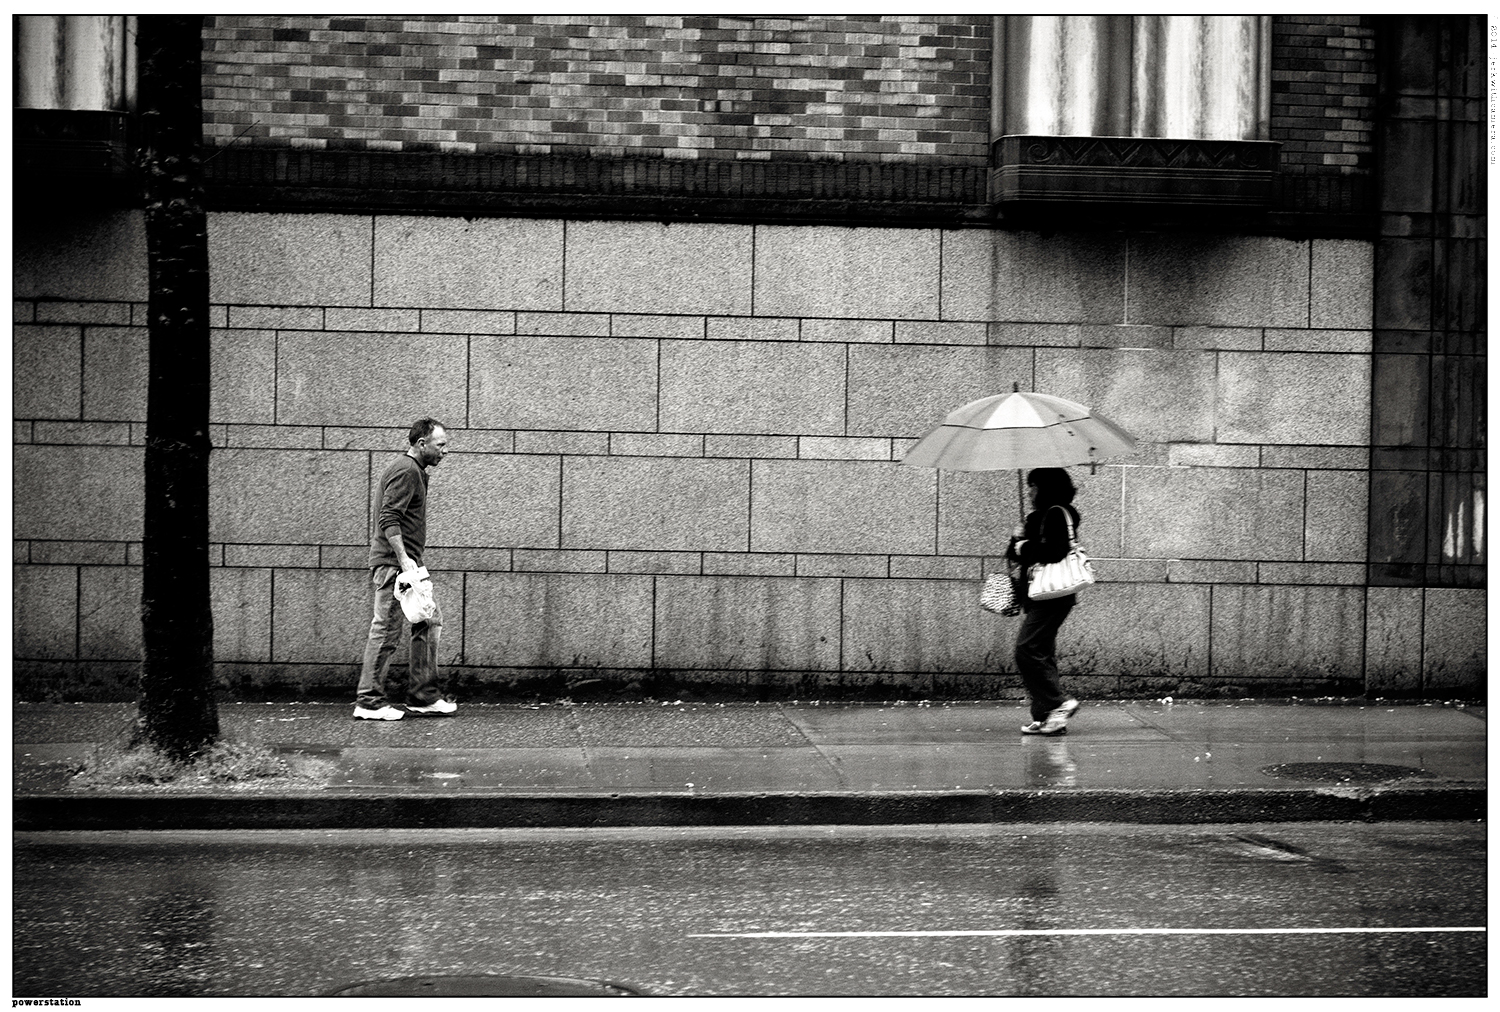 Picking On Complete Strangers - Nikon D610 - Chinatown Walking in the rain